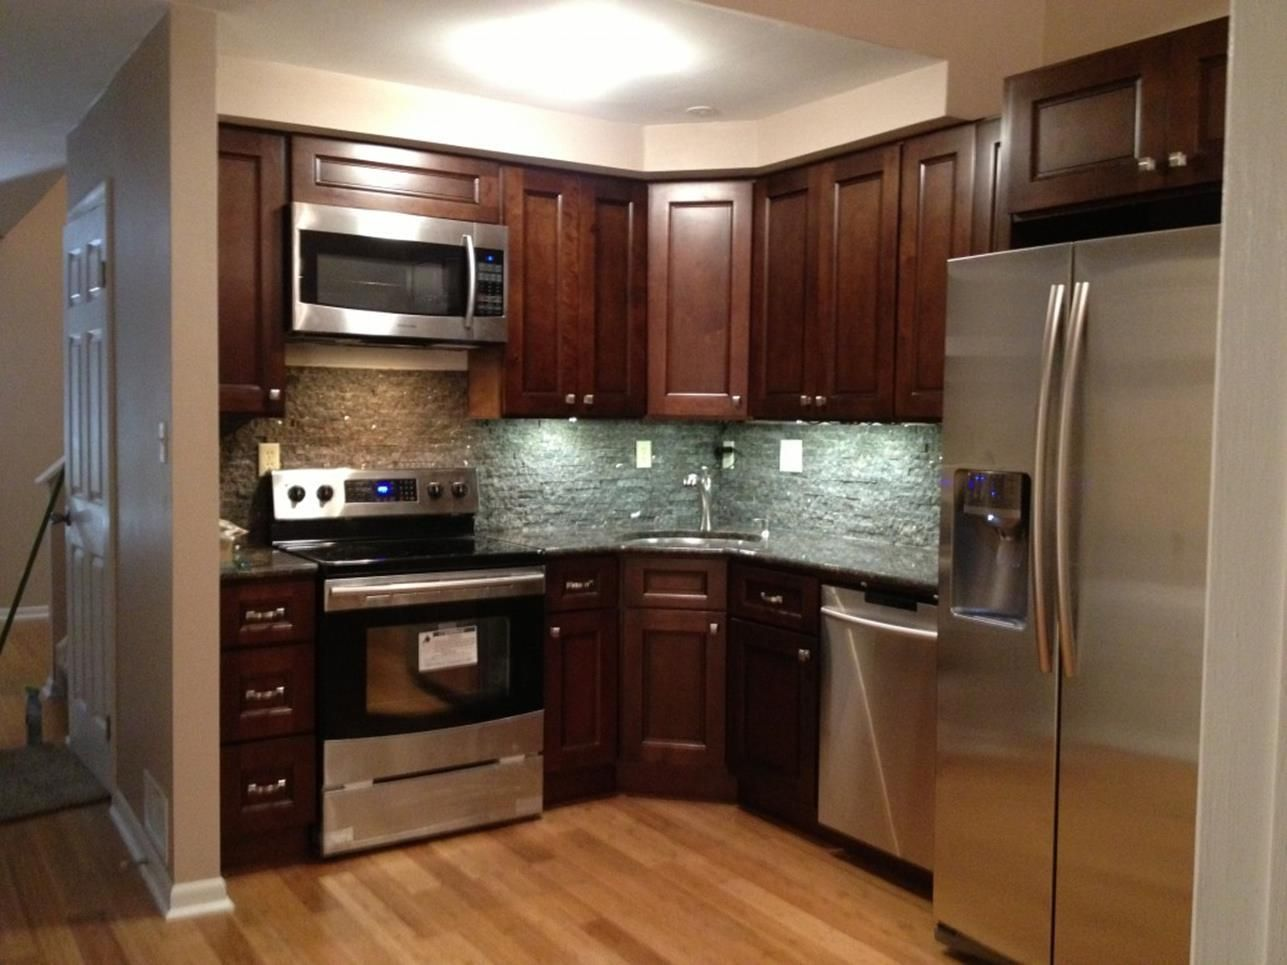 39 awesome townhouse kitchen remodel design kitchen remodel cheap kitchen remodel condo on kitchen remodel kitchen designs id=90900